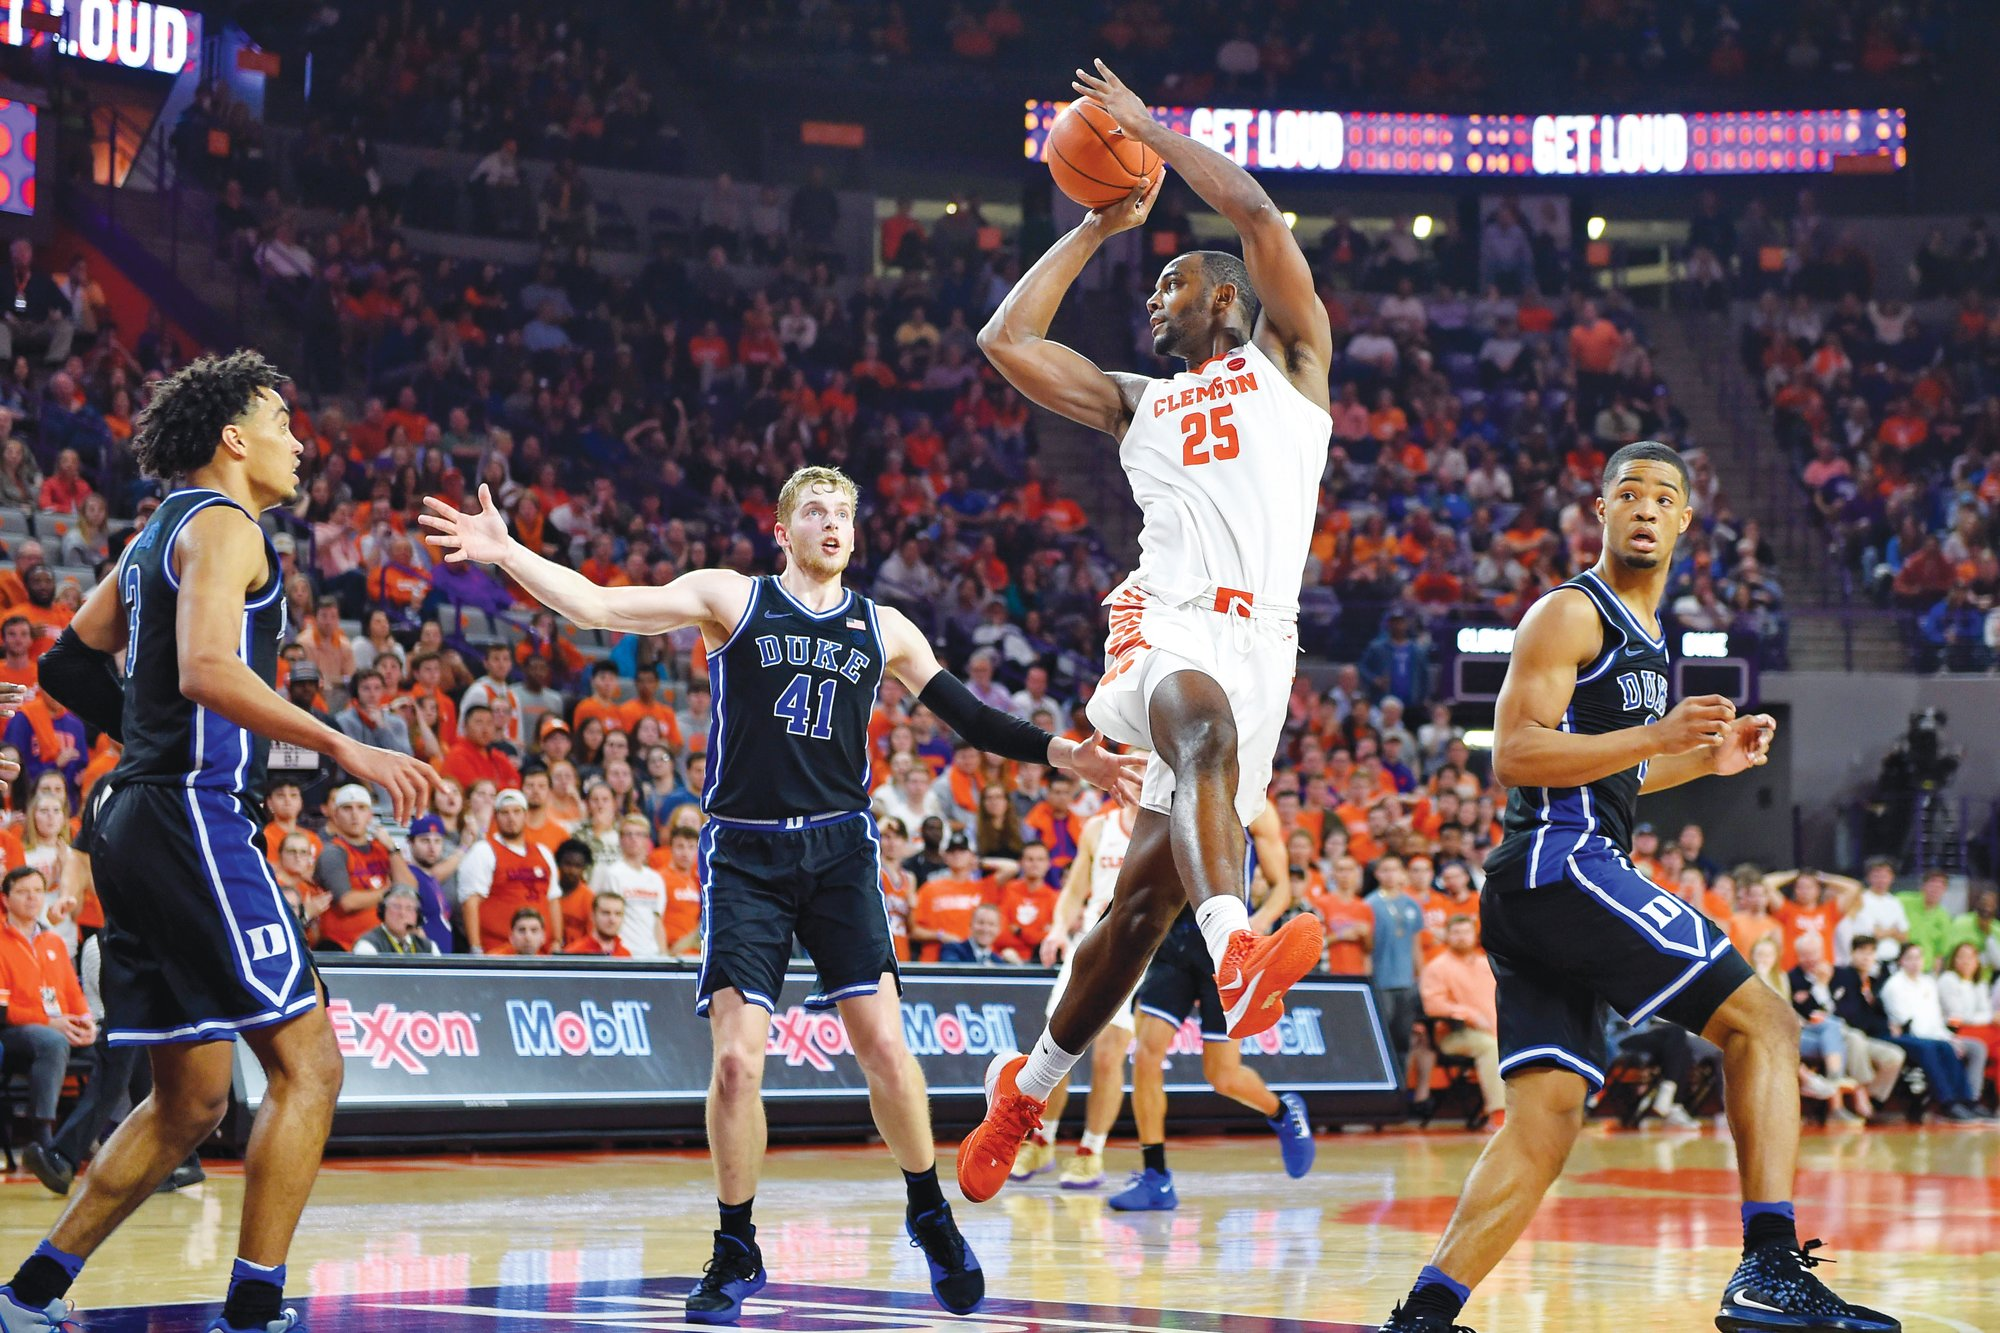 Clemson's Aamir Simms makes a pass (25) under the basket during the Tigers' 79-72 win over Duke on Tuesday in Clemson.